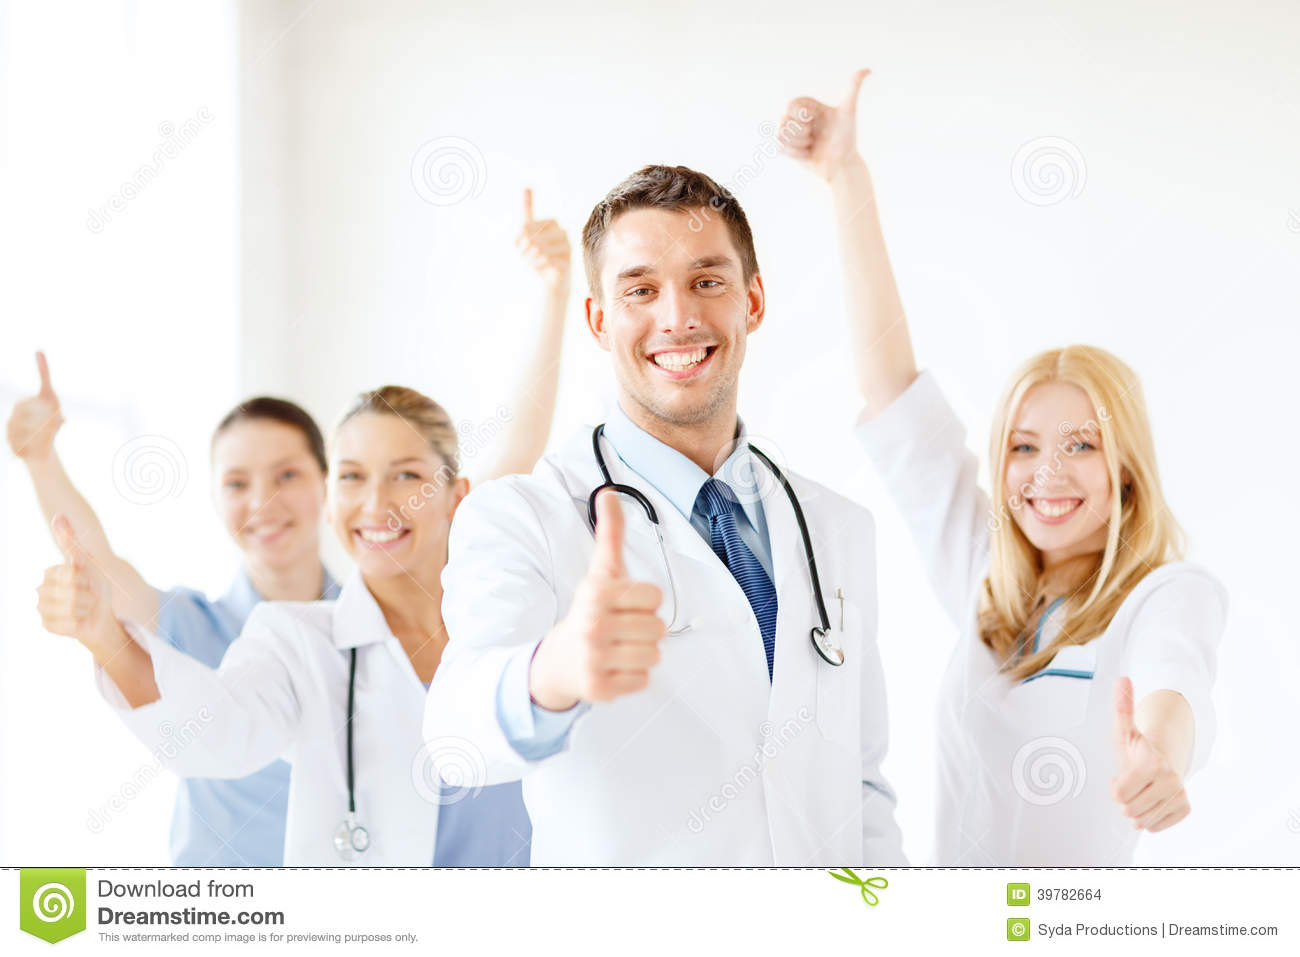 Smiling male doctor in front of medical group